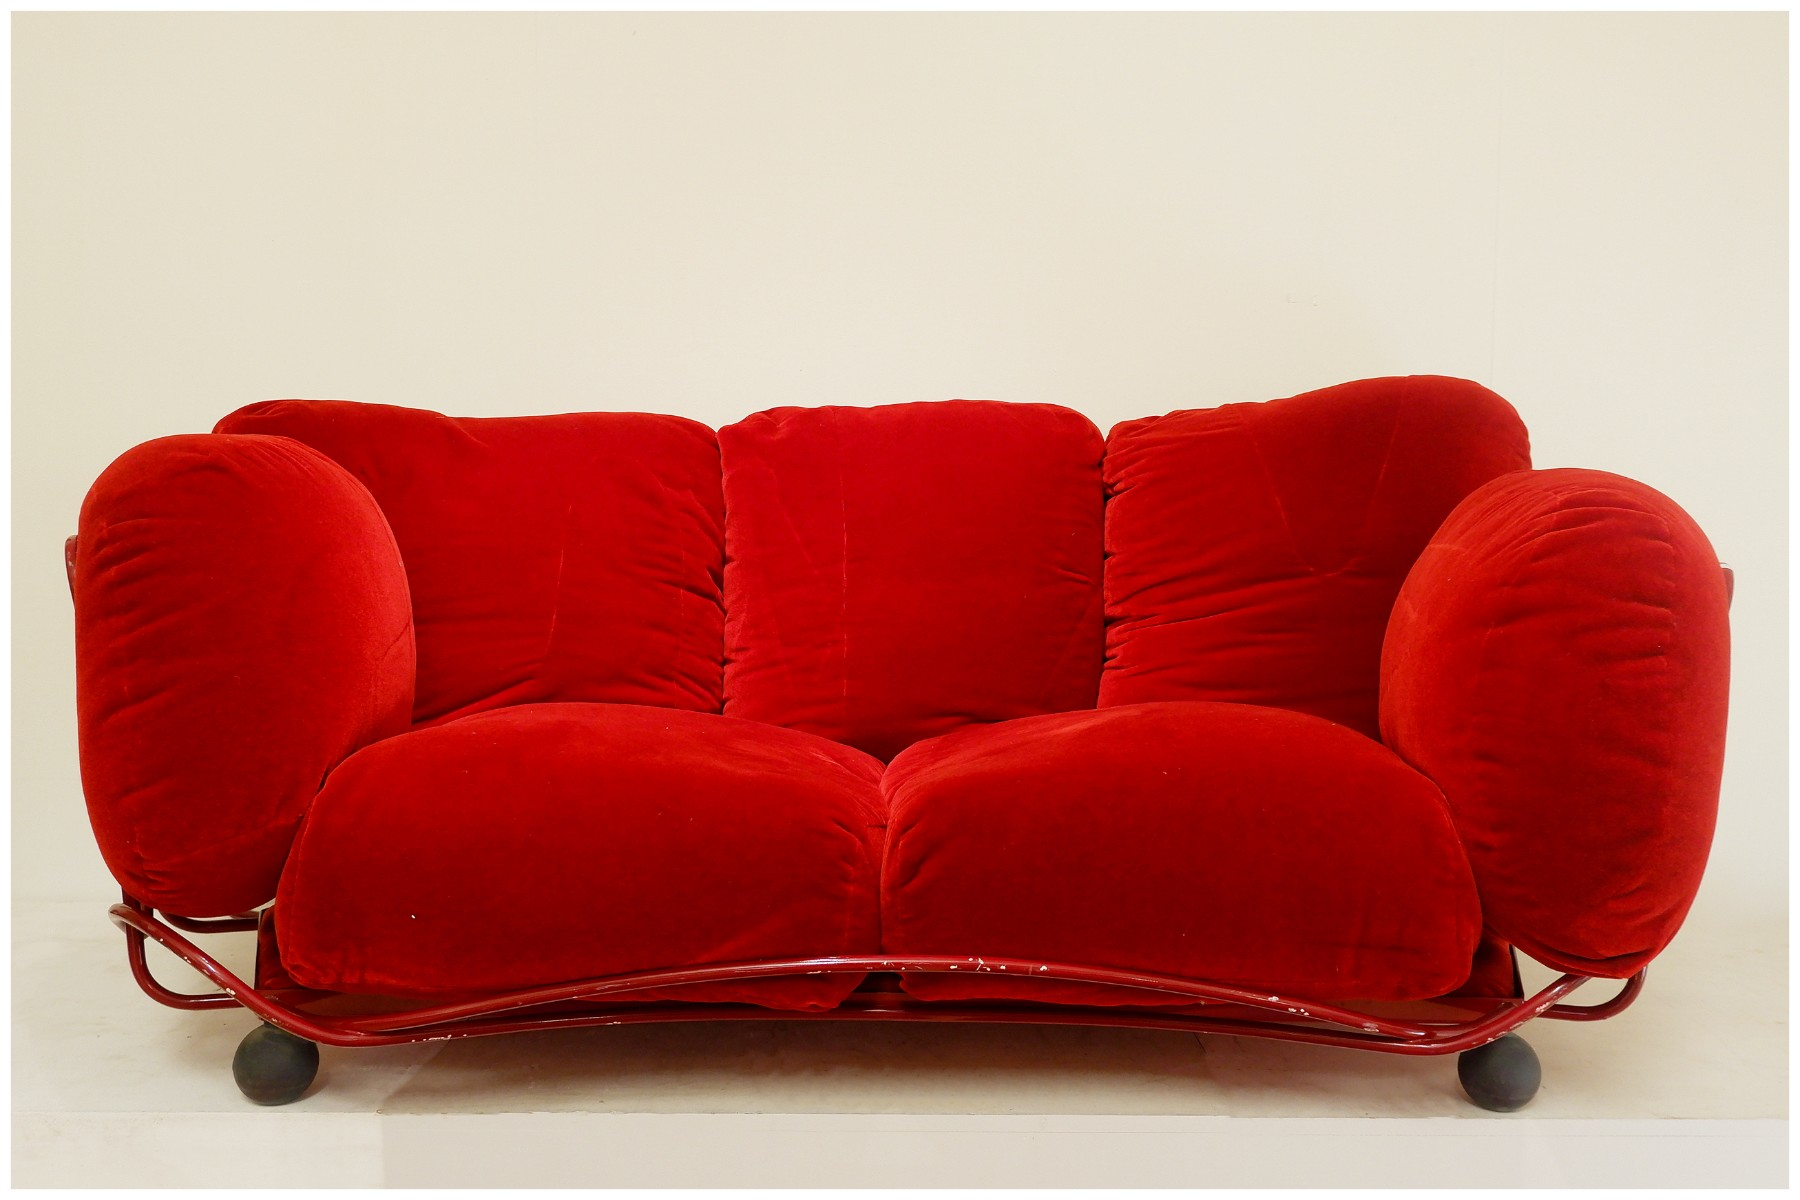 Edra red velvet sofa - Sofa - Seating - Via Antica